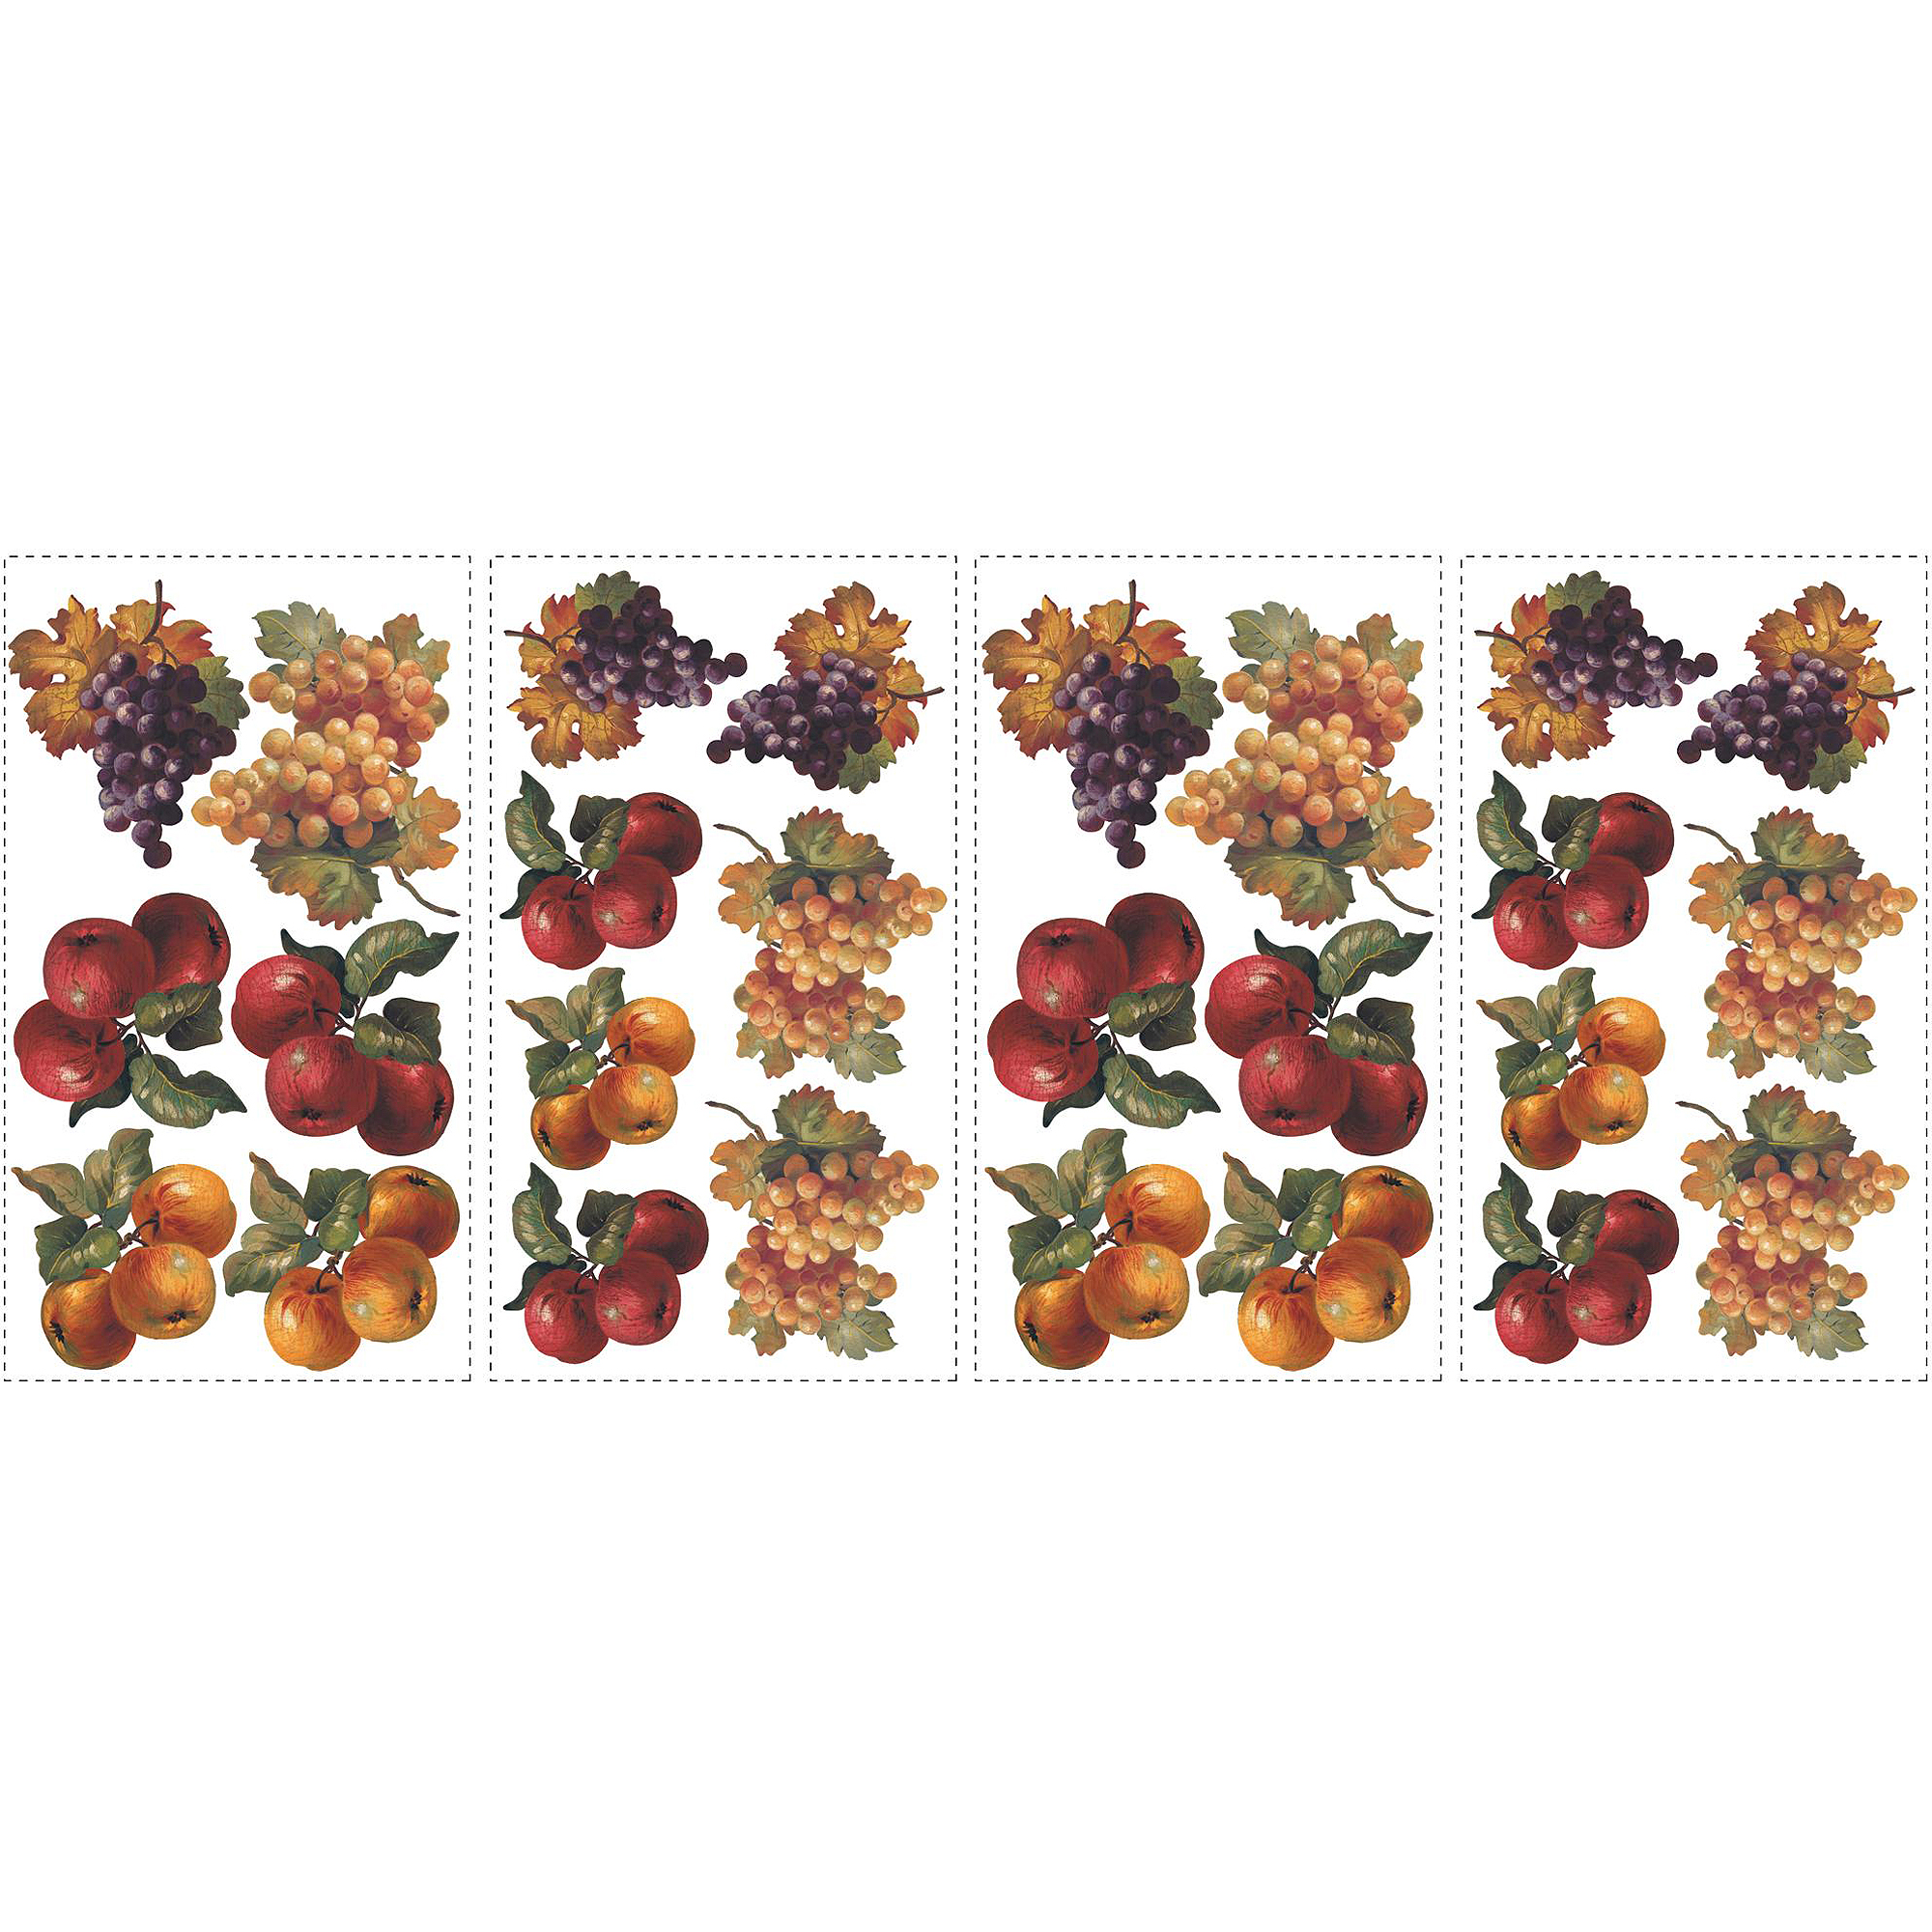 RoomMates Fruit Harvest Peel and Stick Wall Decals